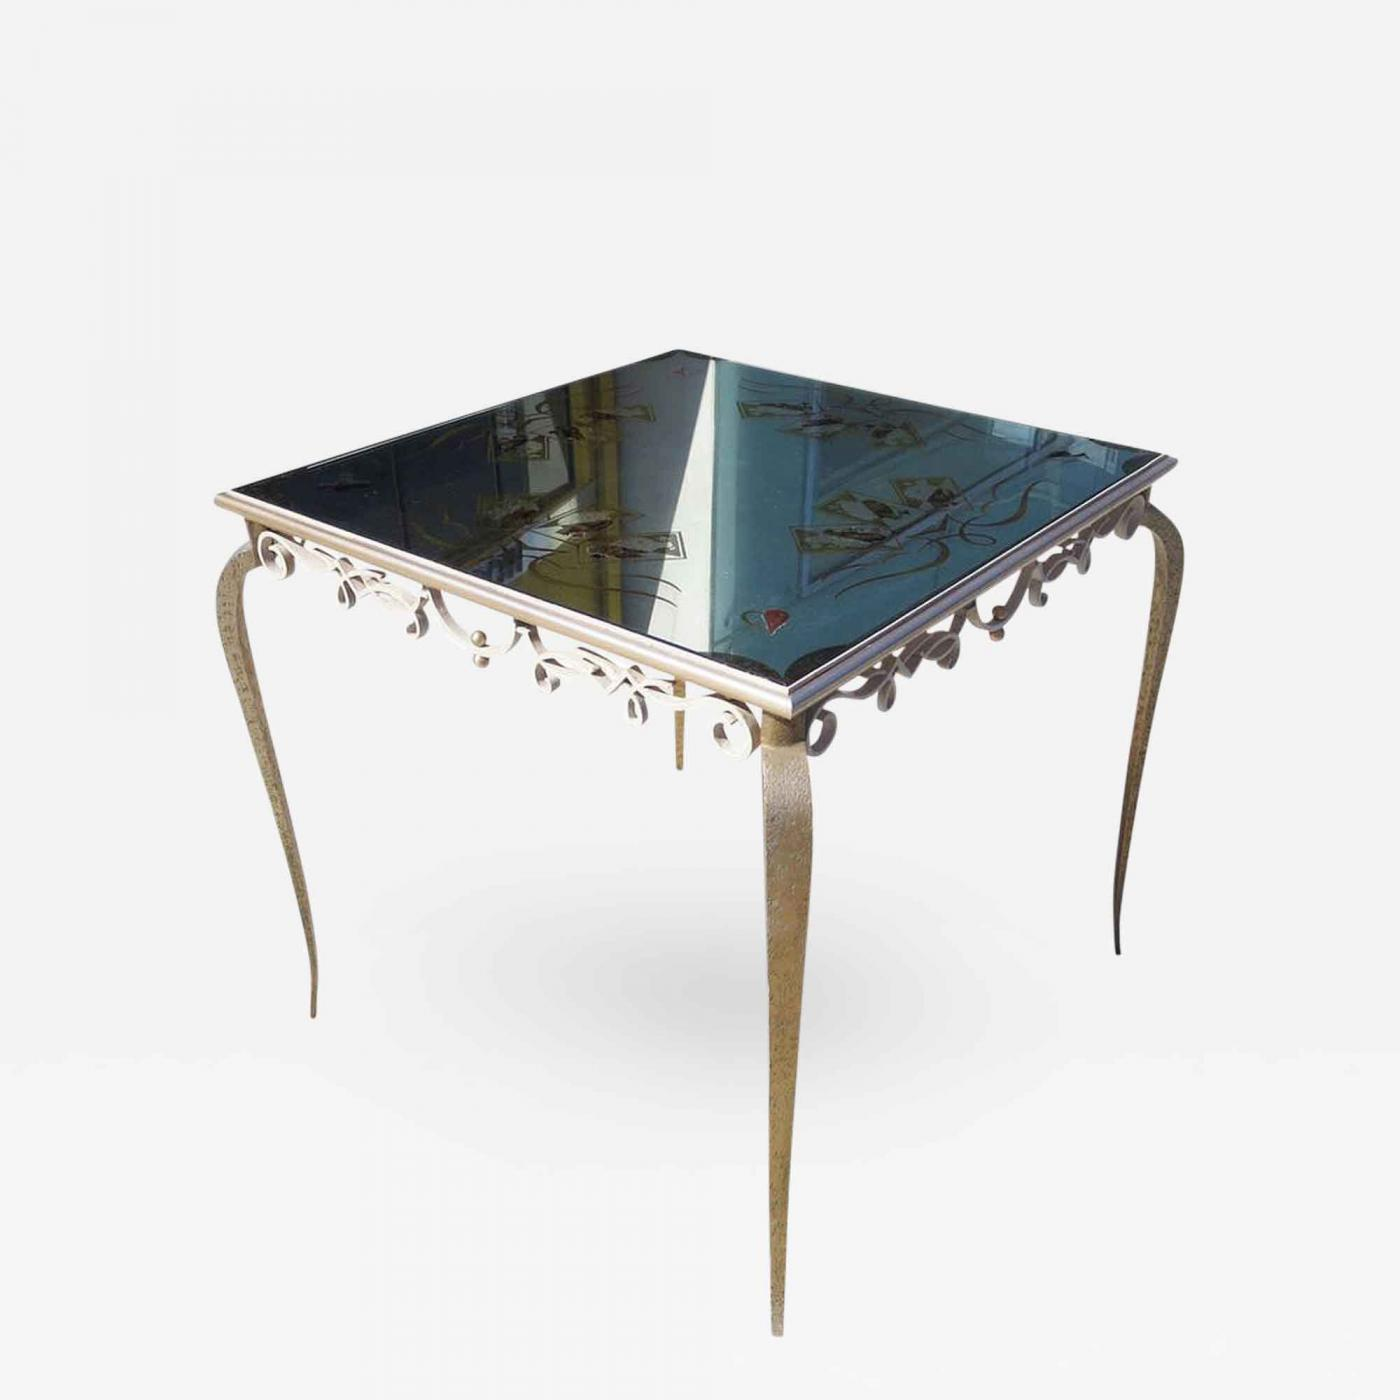 René Drouet églomisé Mirrored Game Table in the Manner of Rene